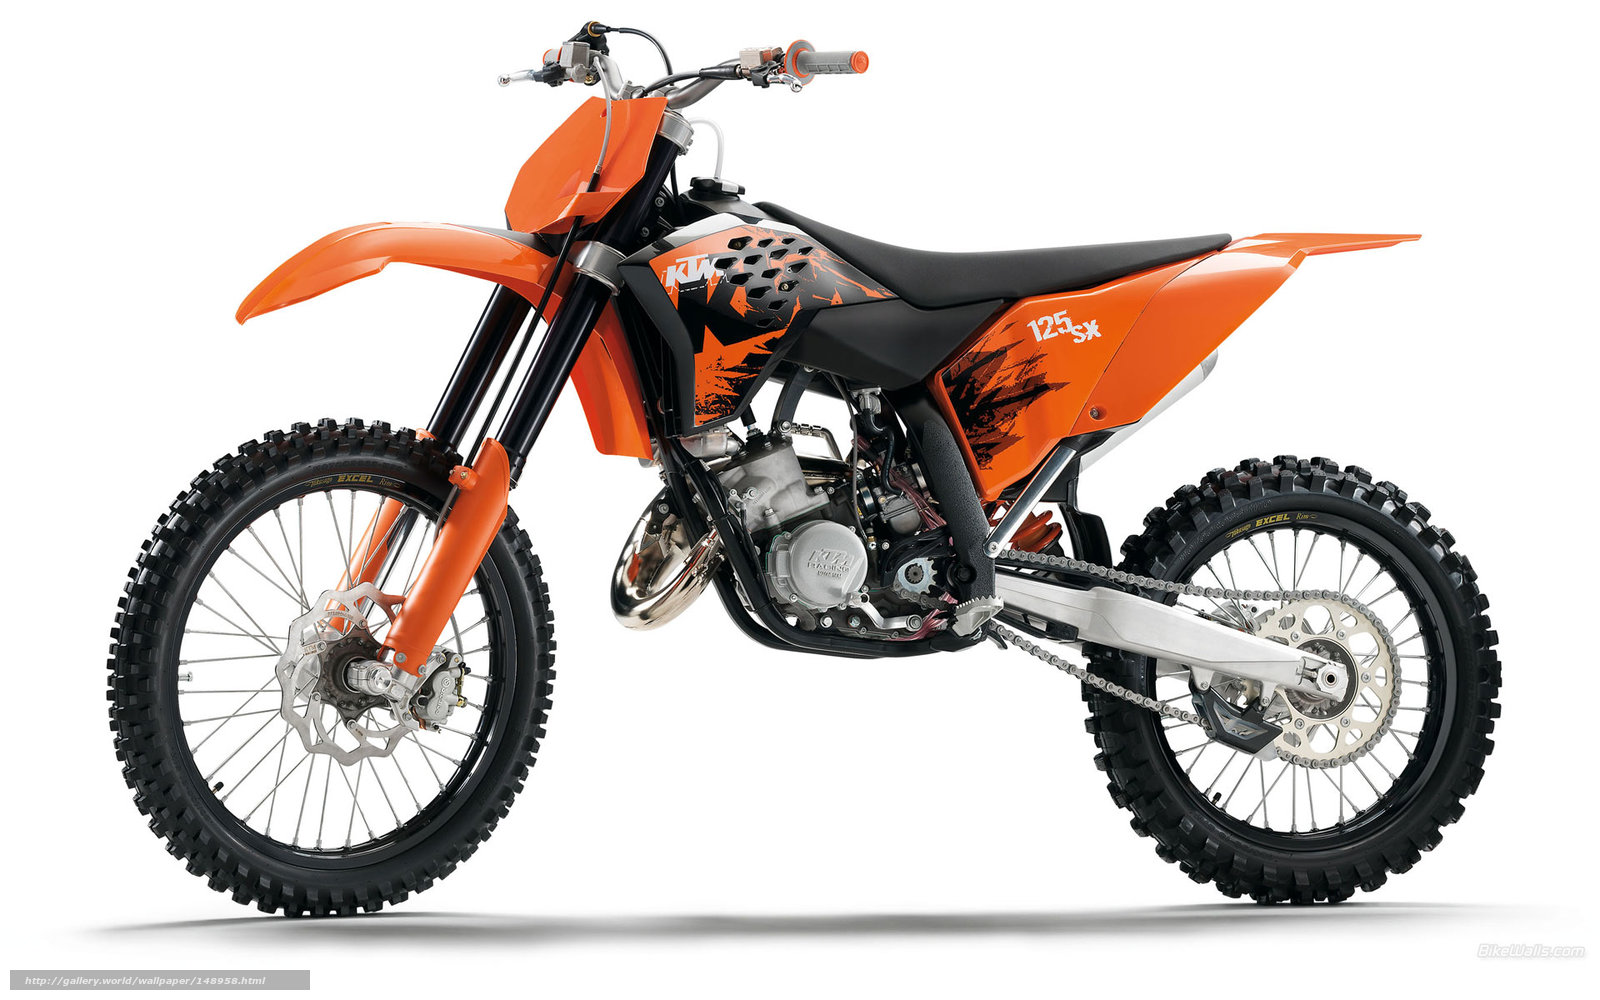 download wallpaper ktm motocross sx 125 sx 125 sx 2007 free desktop wallpaper in the. Black Bedroom Furniture Sets. Home Design Ideas